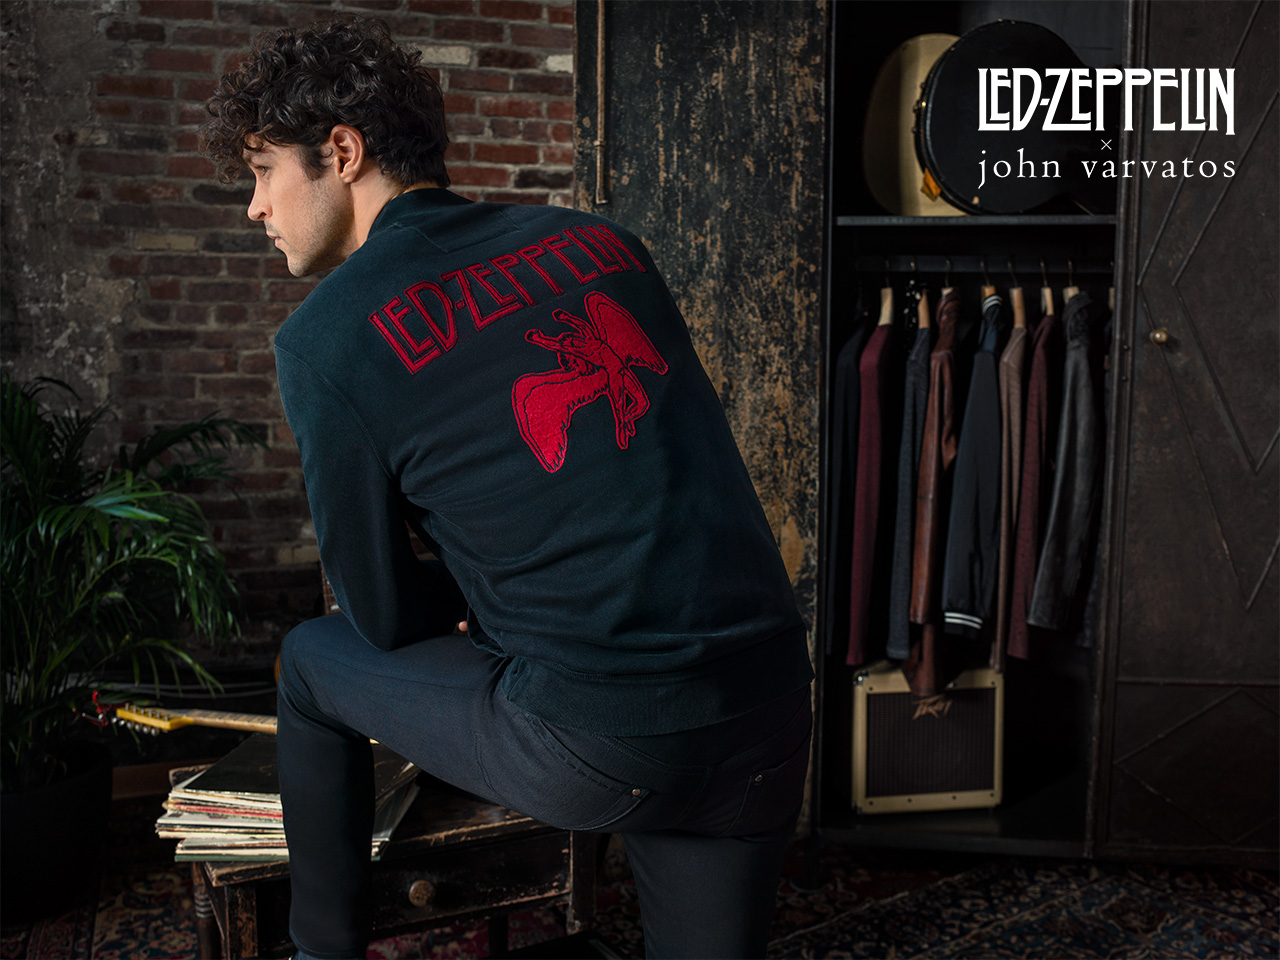 Led Zeppelin x John Varvatos